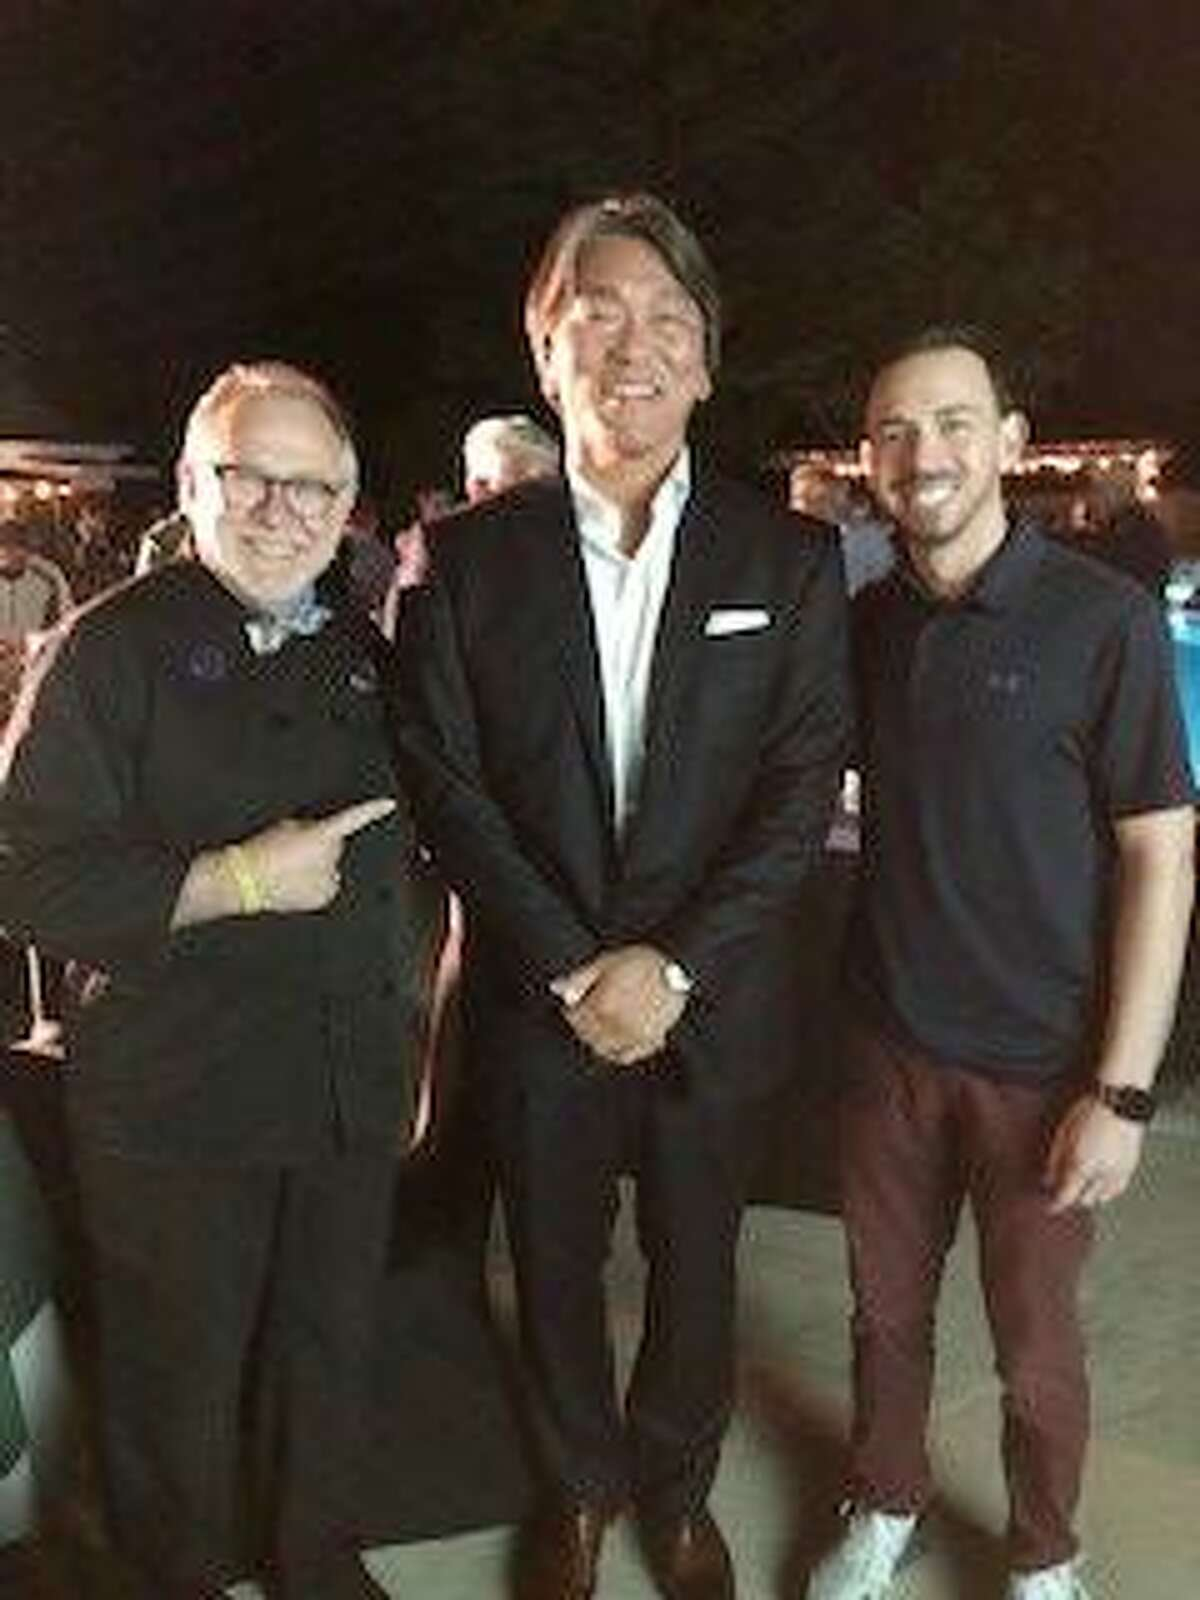 Sky Mercede, of Forever Sweet Bakery in Norwalk, former New York Yankees All-Star Hideki Matsui, and Sky Mercede II at the Champion a Champion Golf Classic at Tamarack Country Club in Greenwich, Conn. Monday, Sept. 20, 2021.